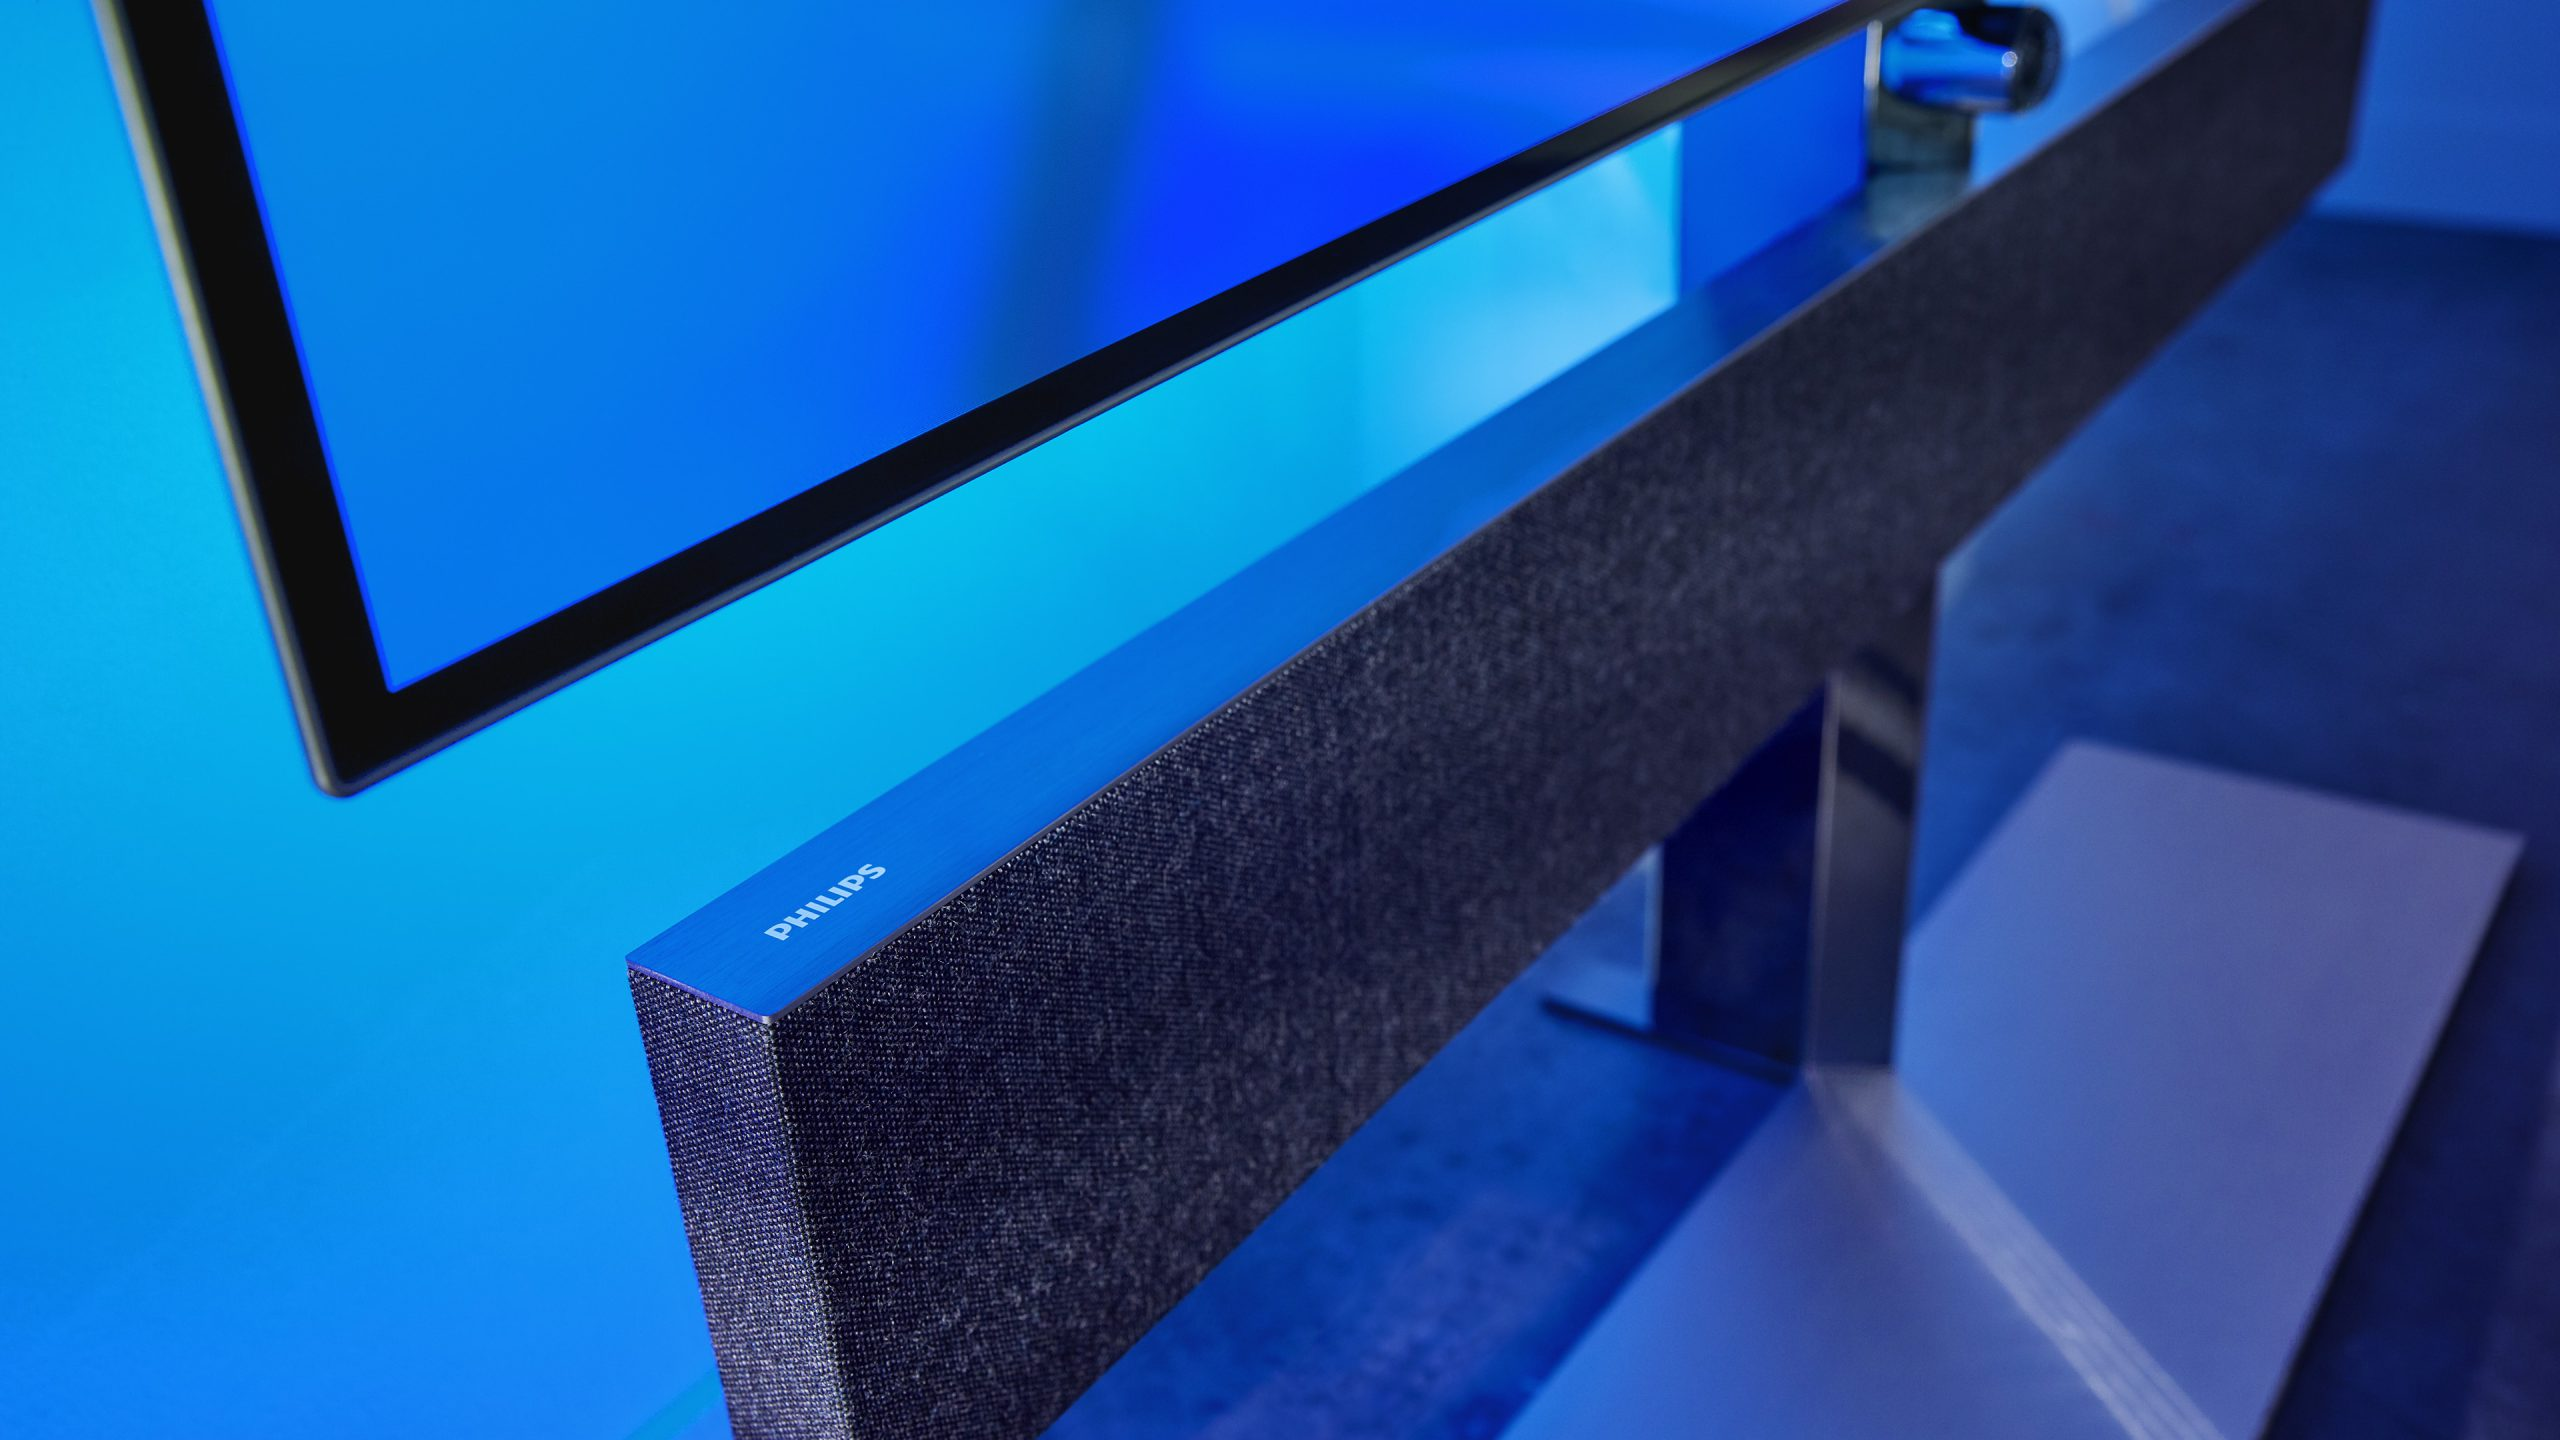 Philips 65OLED984 soundbar